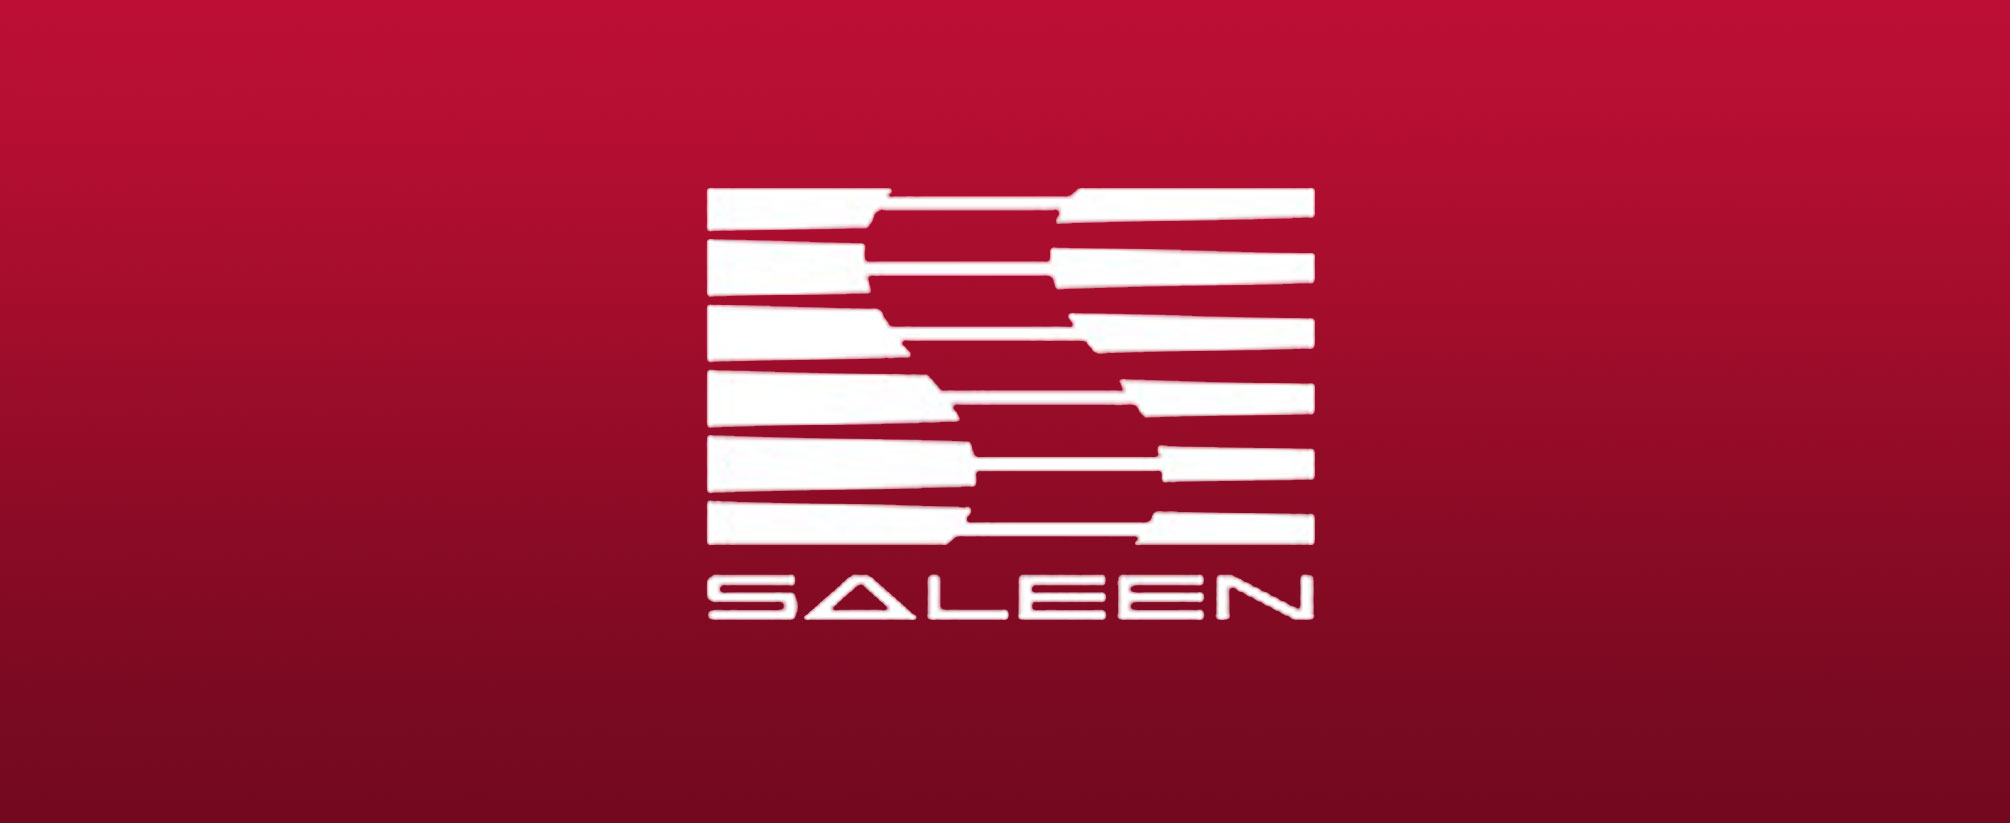 Memorable-Manufacturers-Steve-Saleen-A